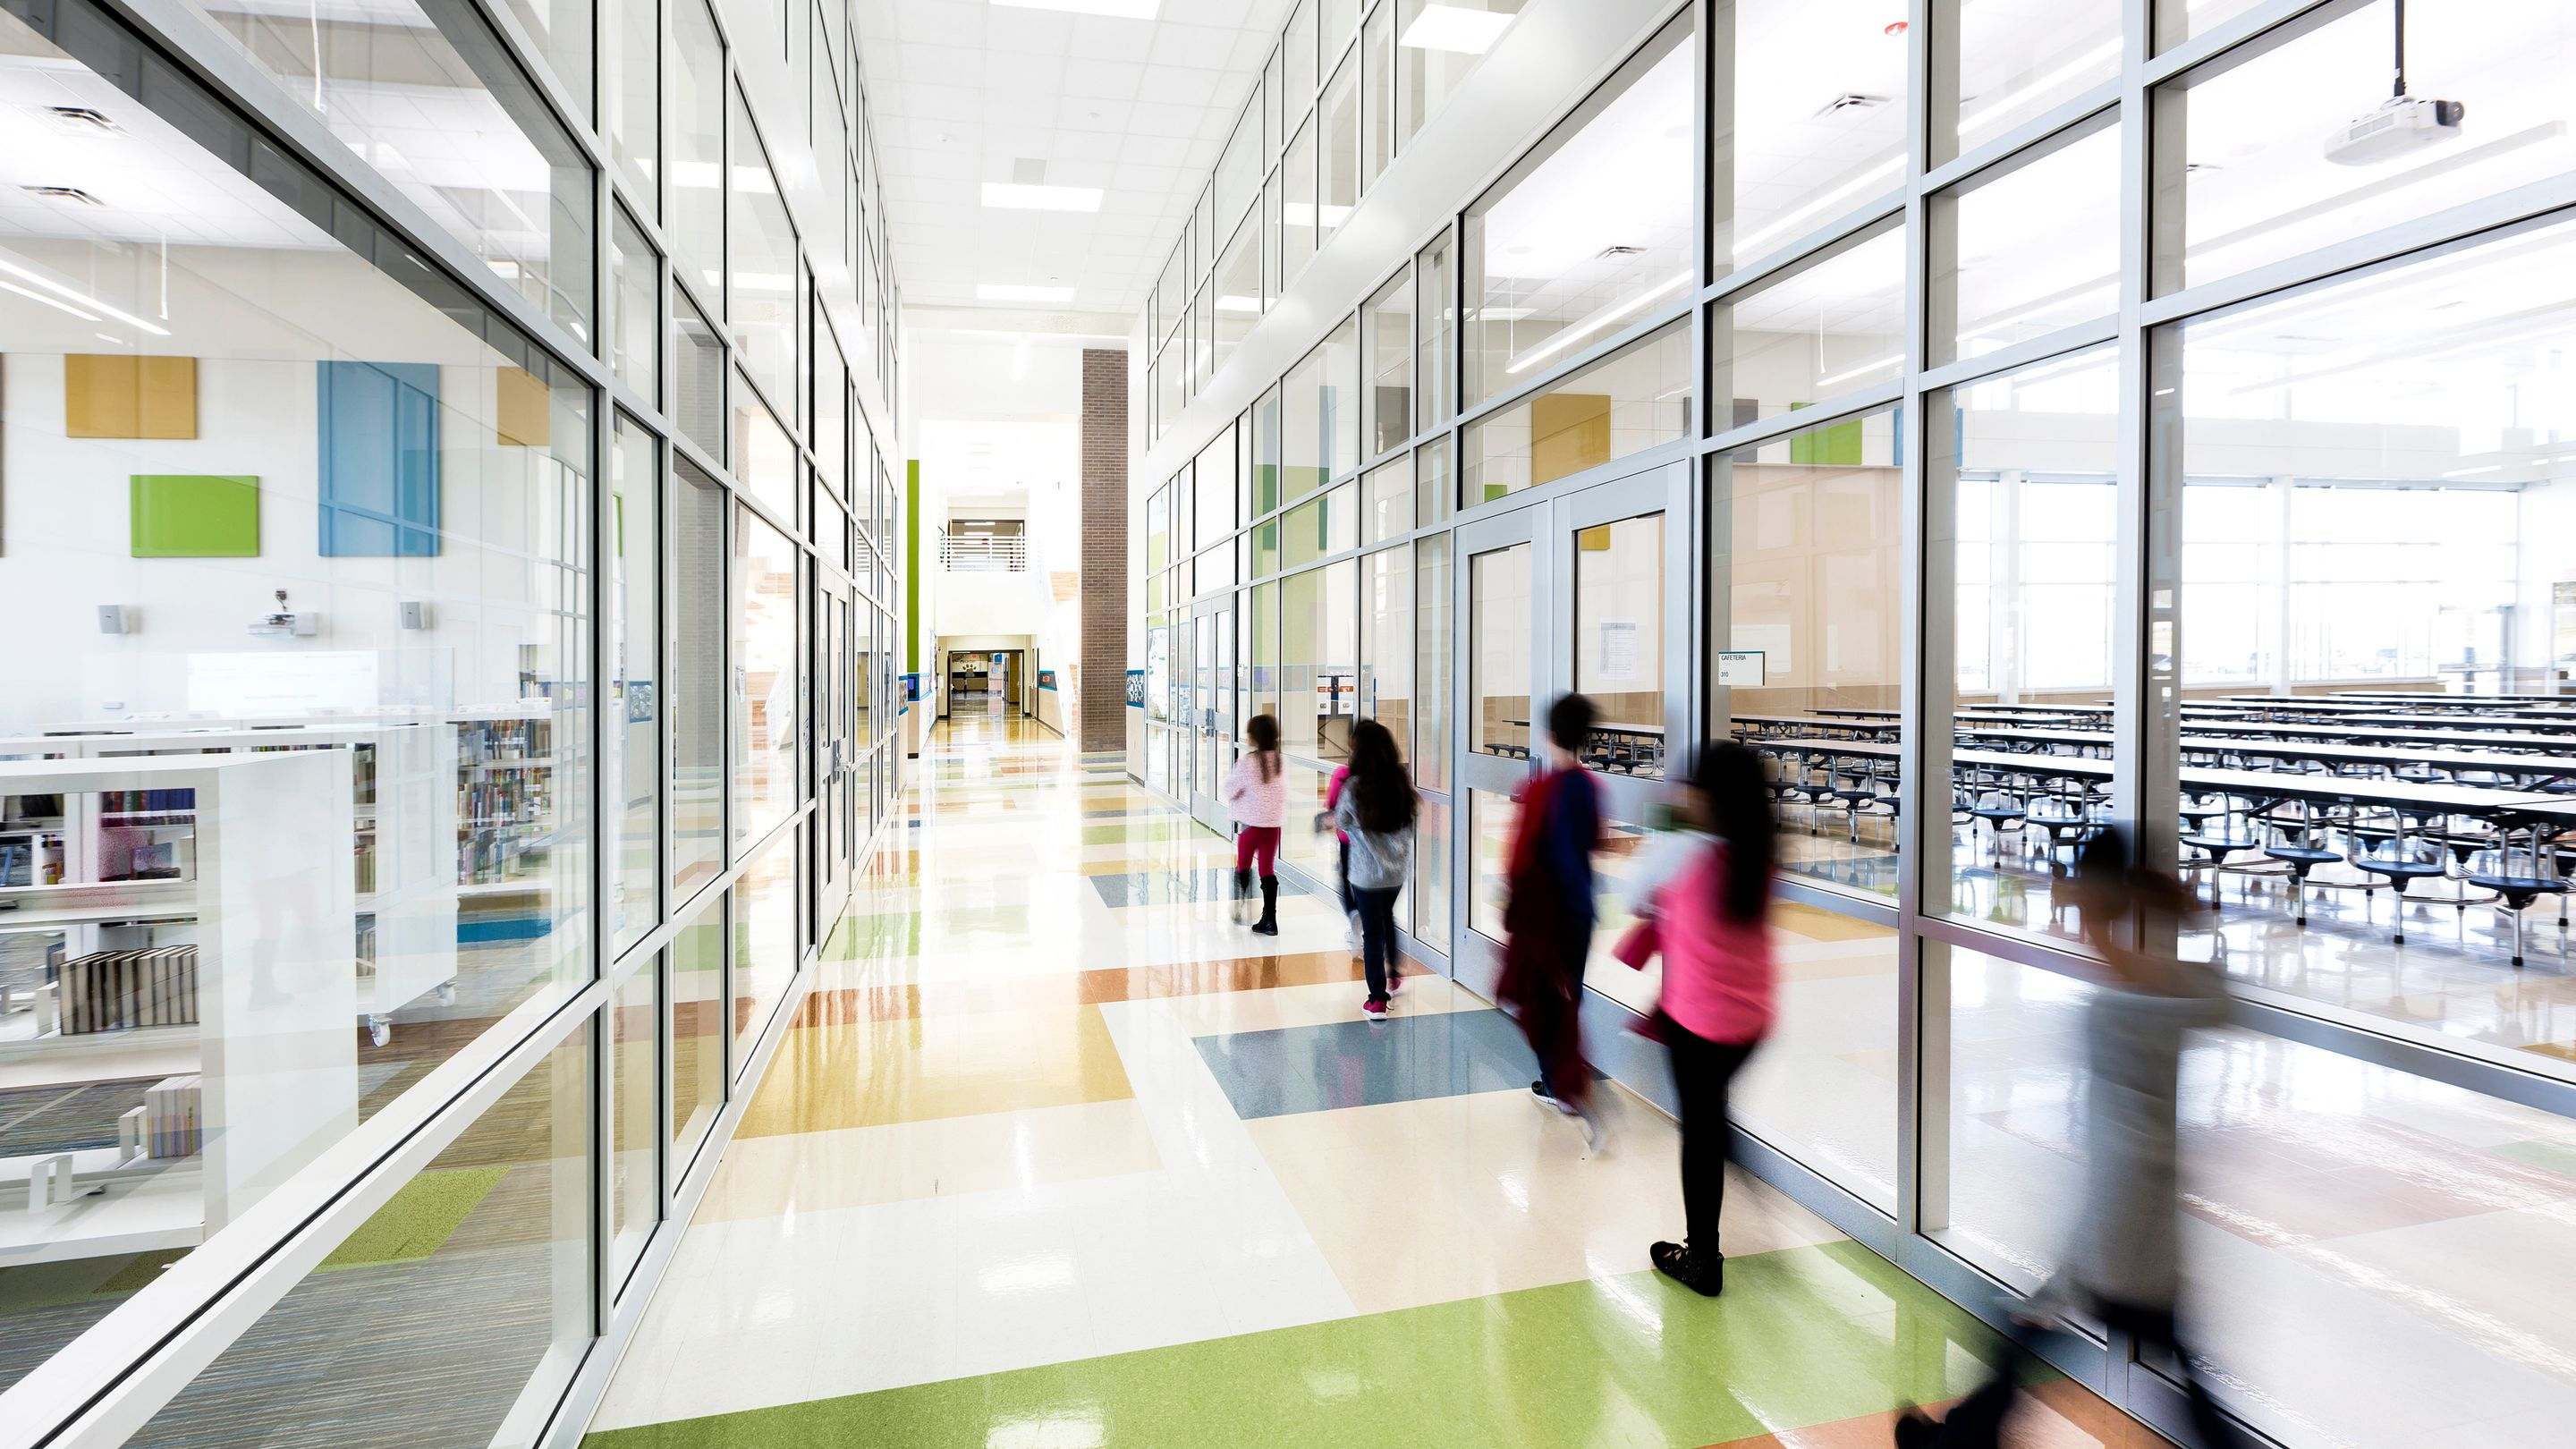 The Architecture of Ideal Learning Environments | Edutopia